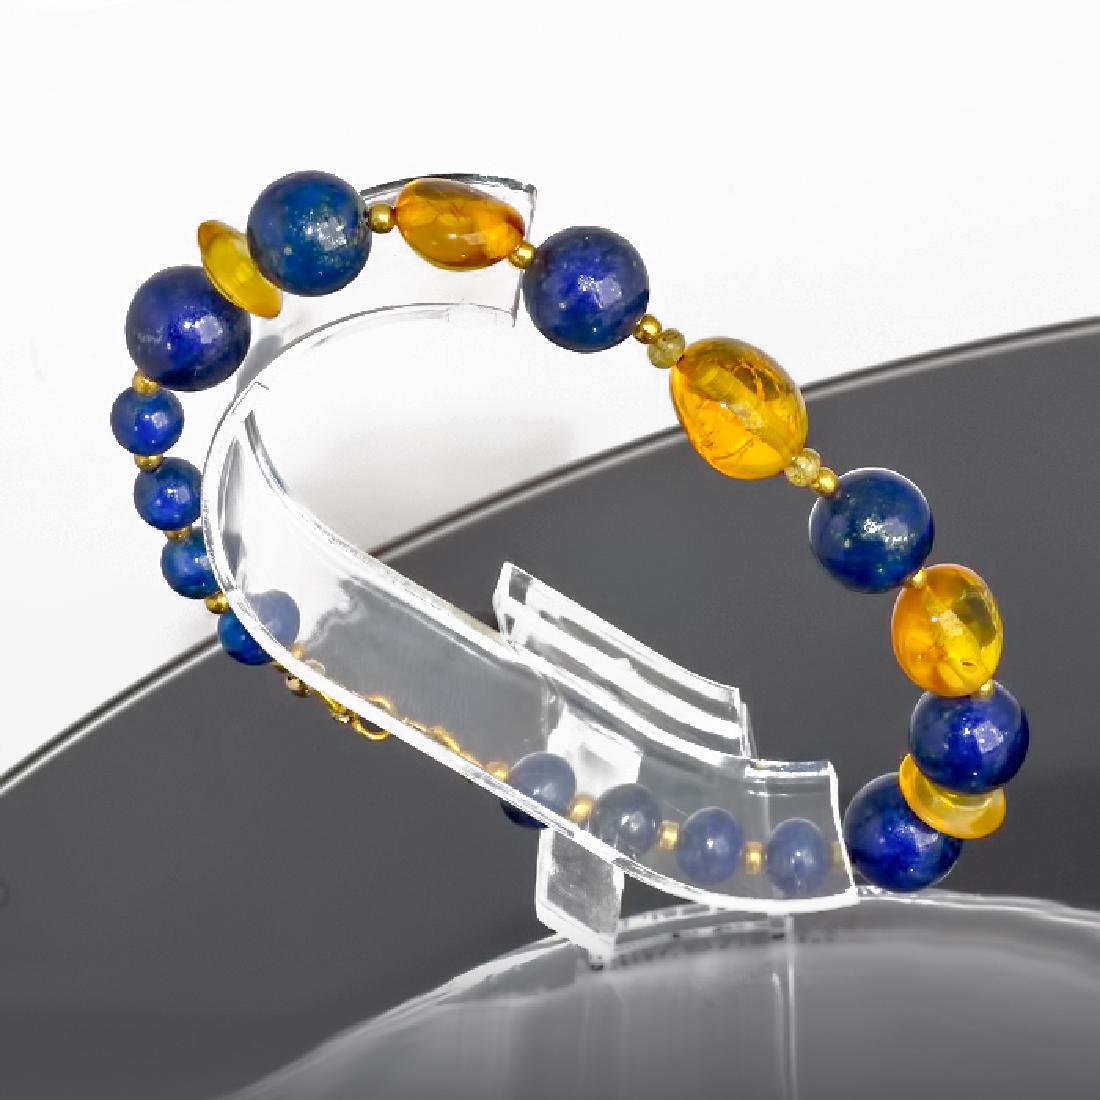 Lapis lazuli and Amber bracelet with Sapphires - 5